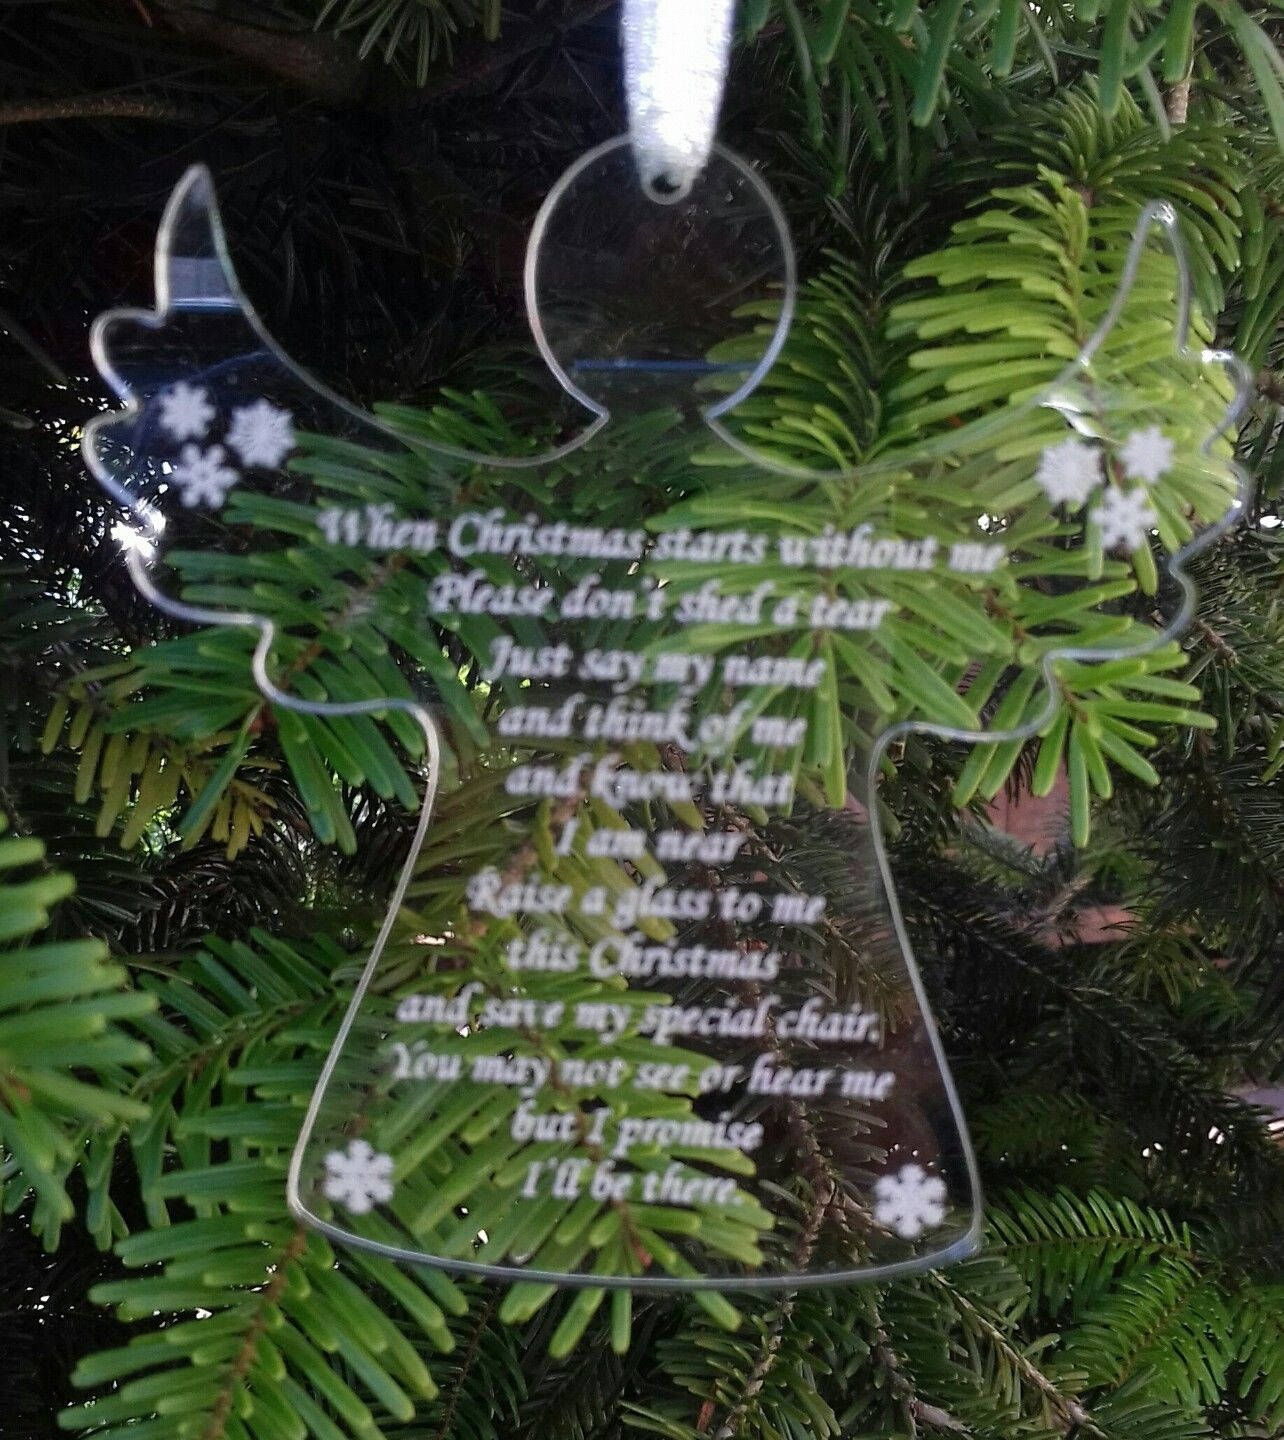 In Memory Bauble Angel Memorial Decoration Special Chair Etsy Christmas In Heaven Ornament Christmas Tree Decorations Laser Engraved Gifts